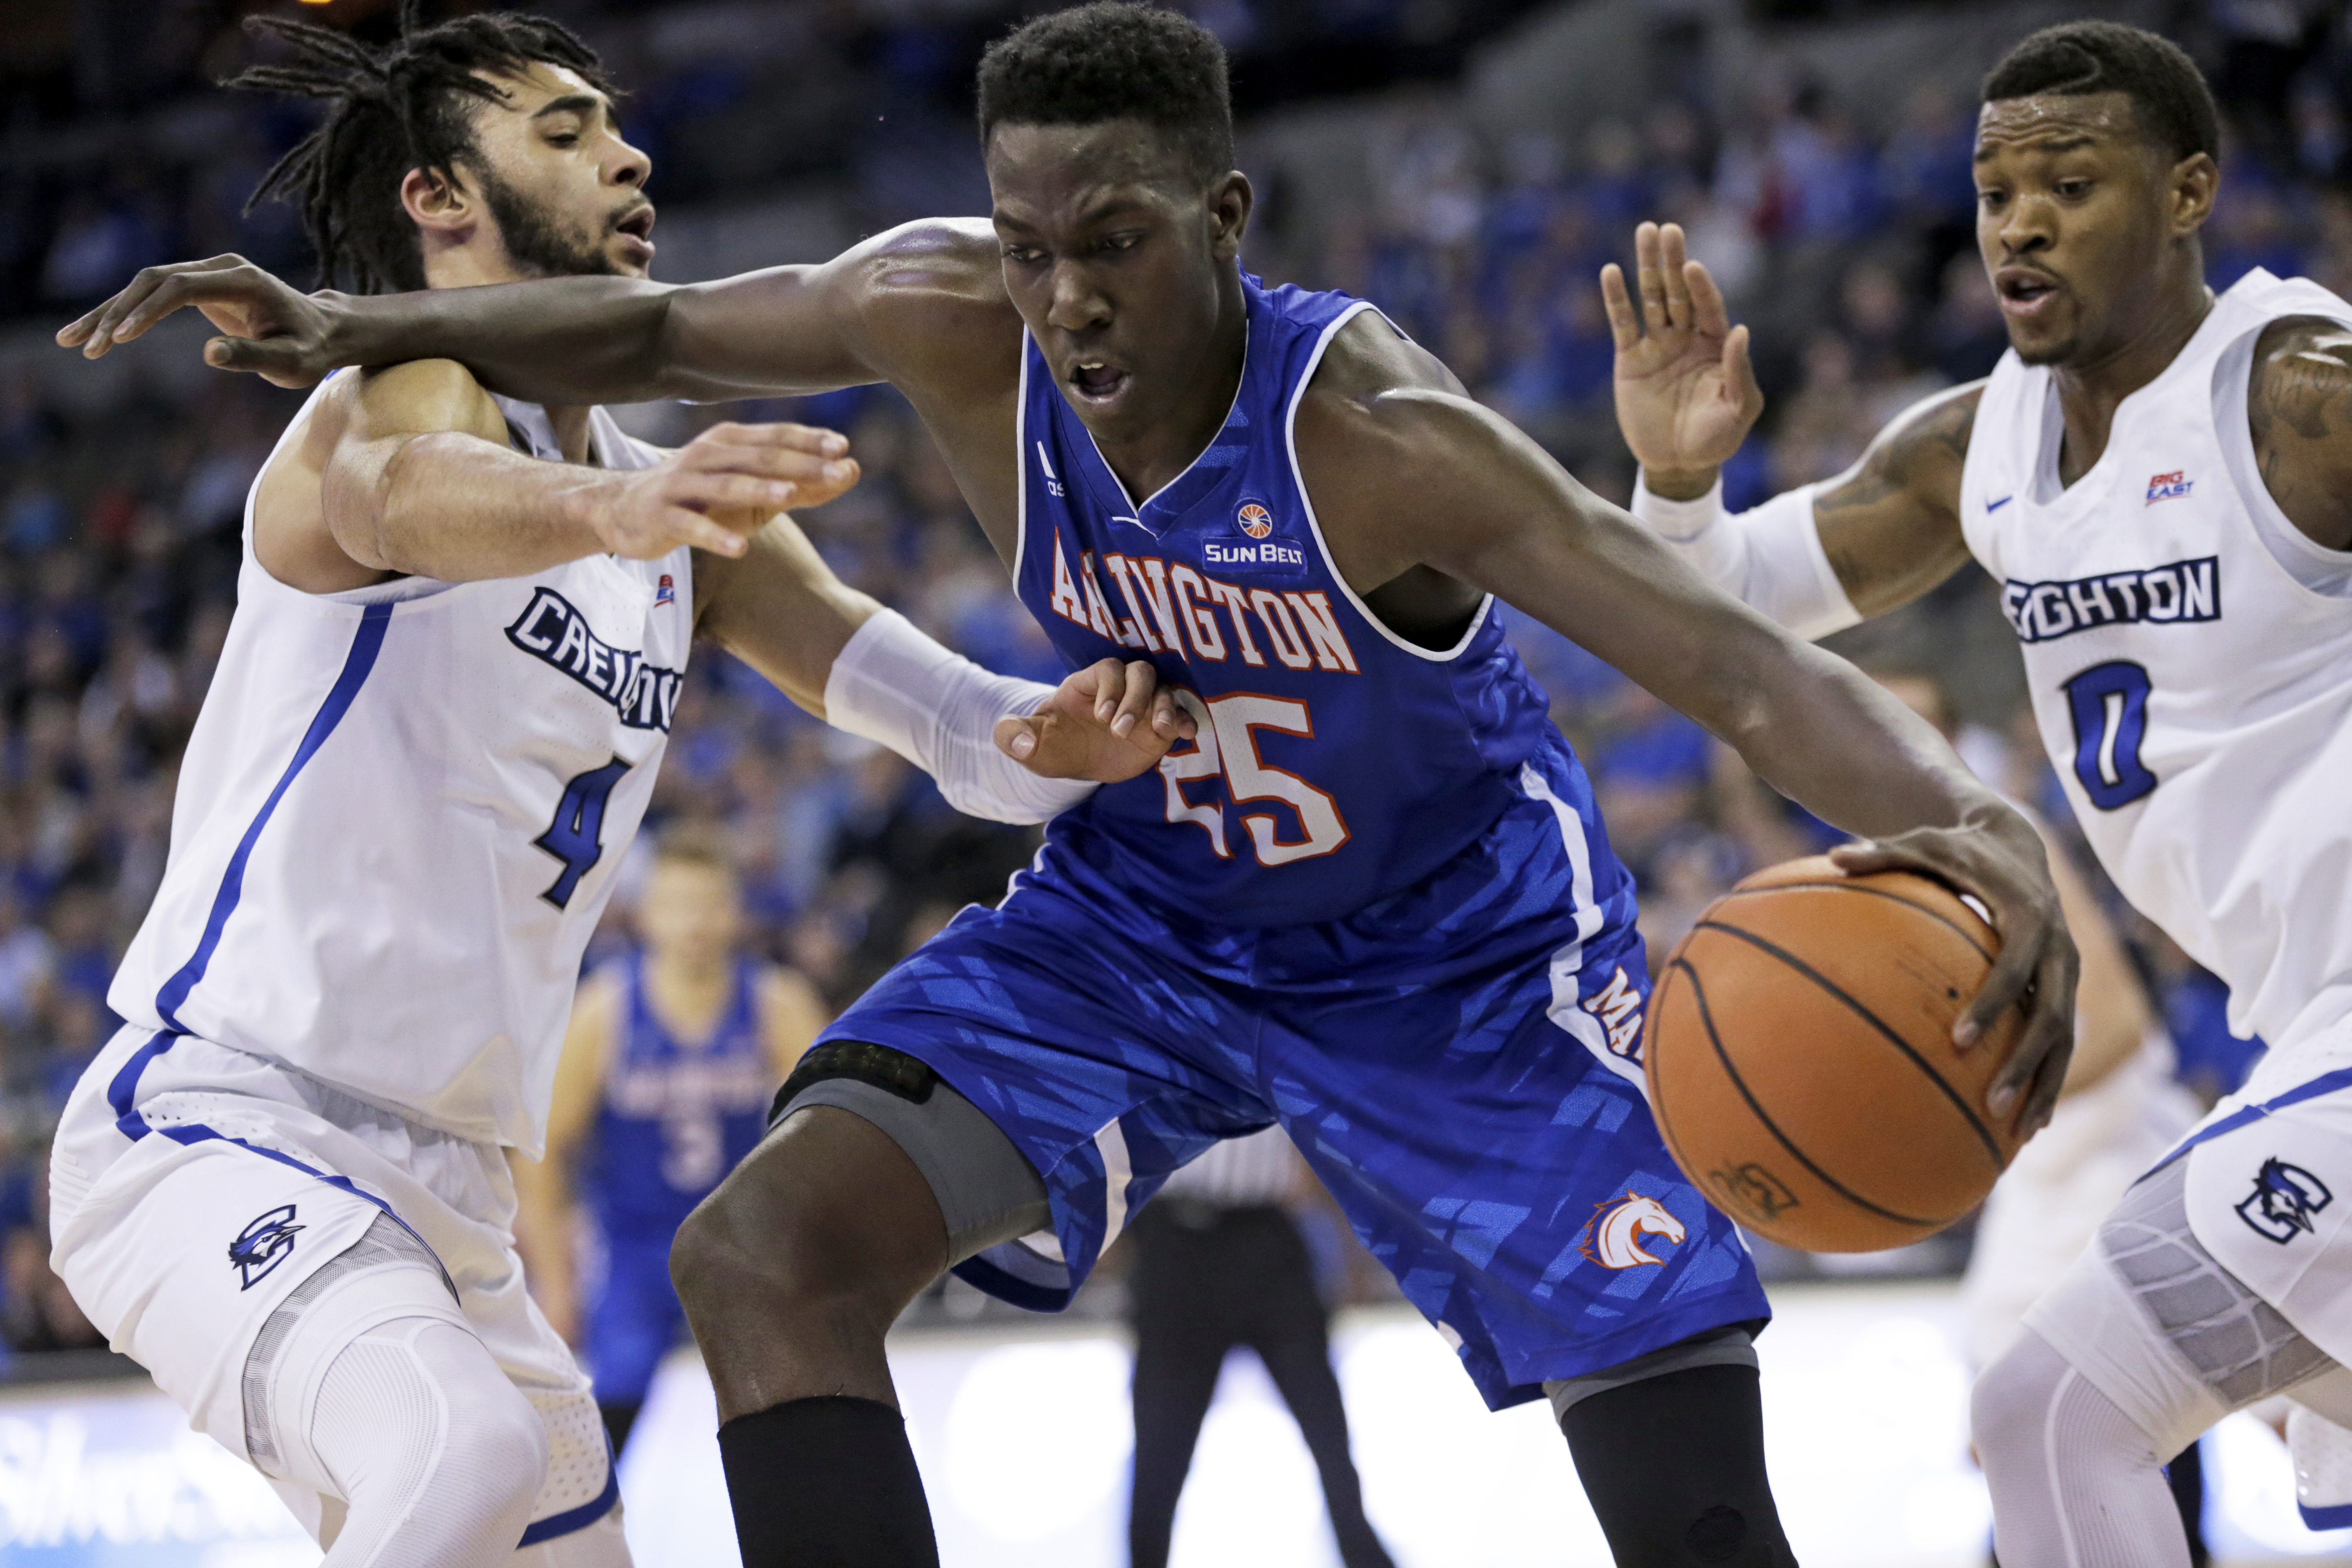 National writer: UTA's Kevin Hervey was NBA combine's most intriguing prospect, could be 'a home run' pick